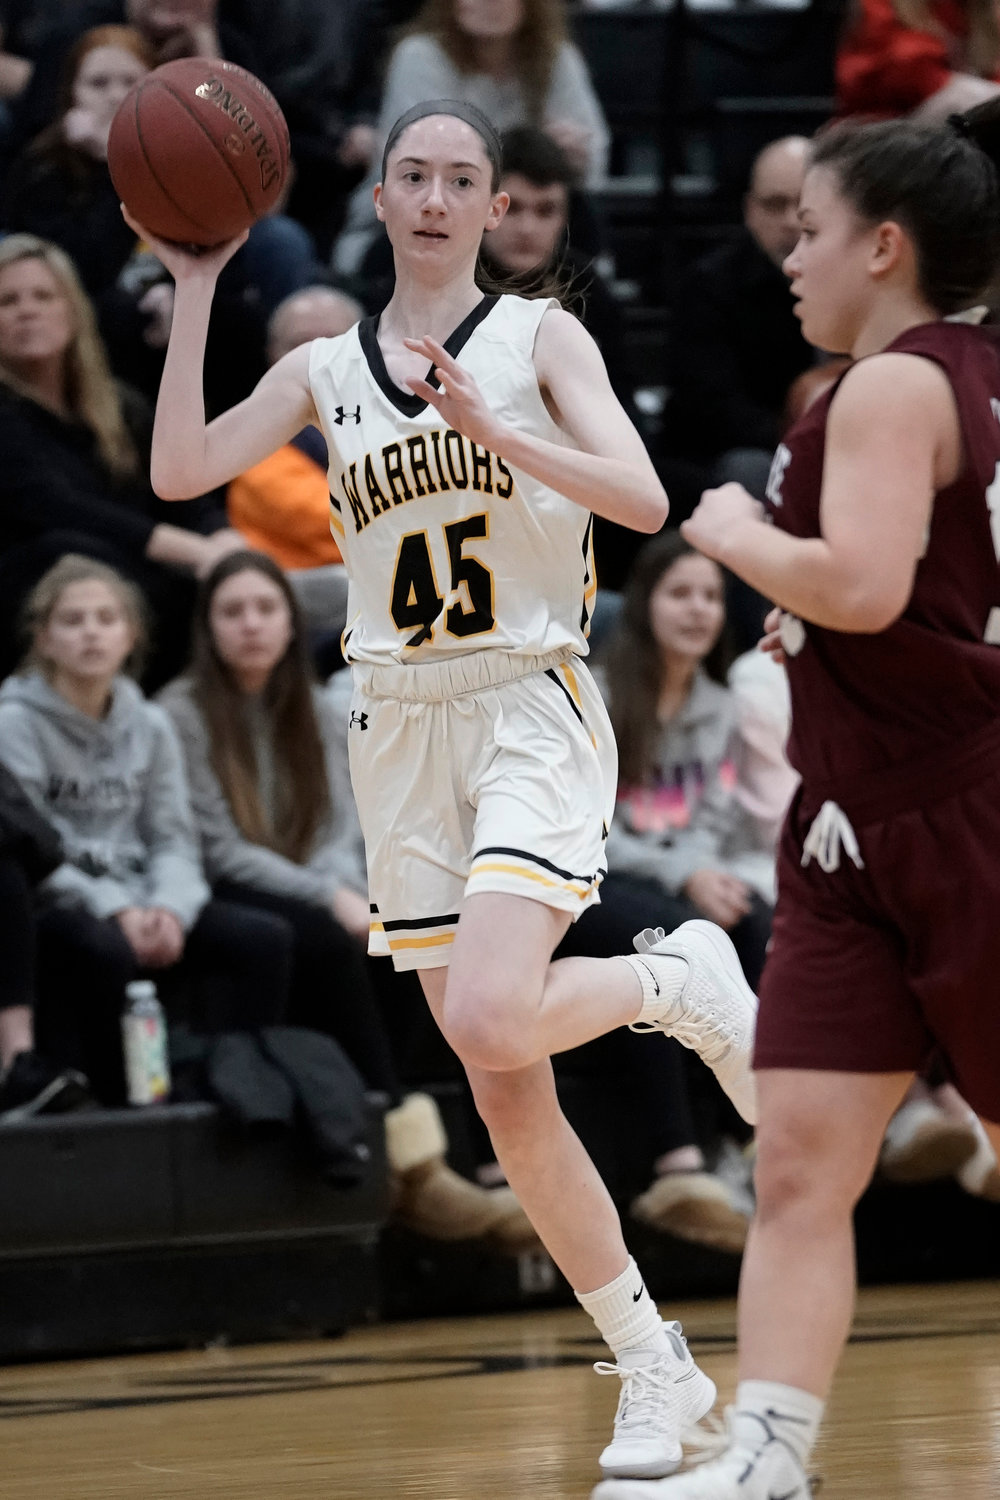 Wantagh's Morgan Flaherty had a huge effort last Friday night with 18 points in the Lady Warriors' 53-45 home playoff win over North Shore.